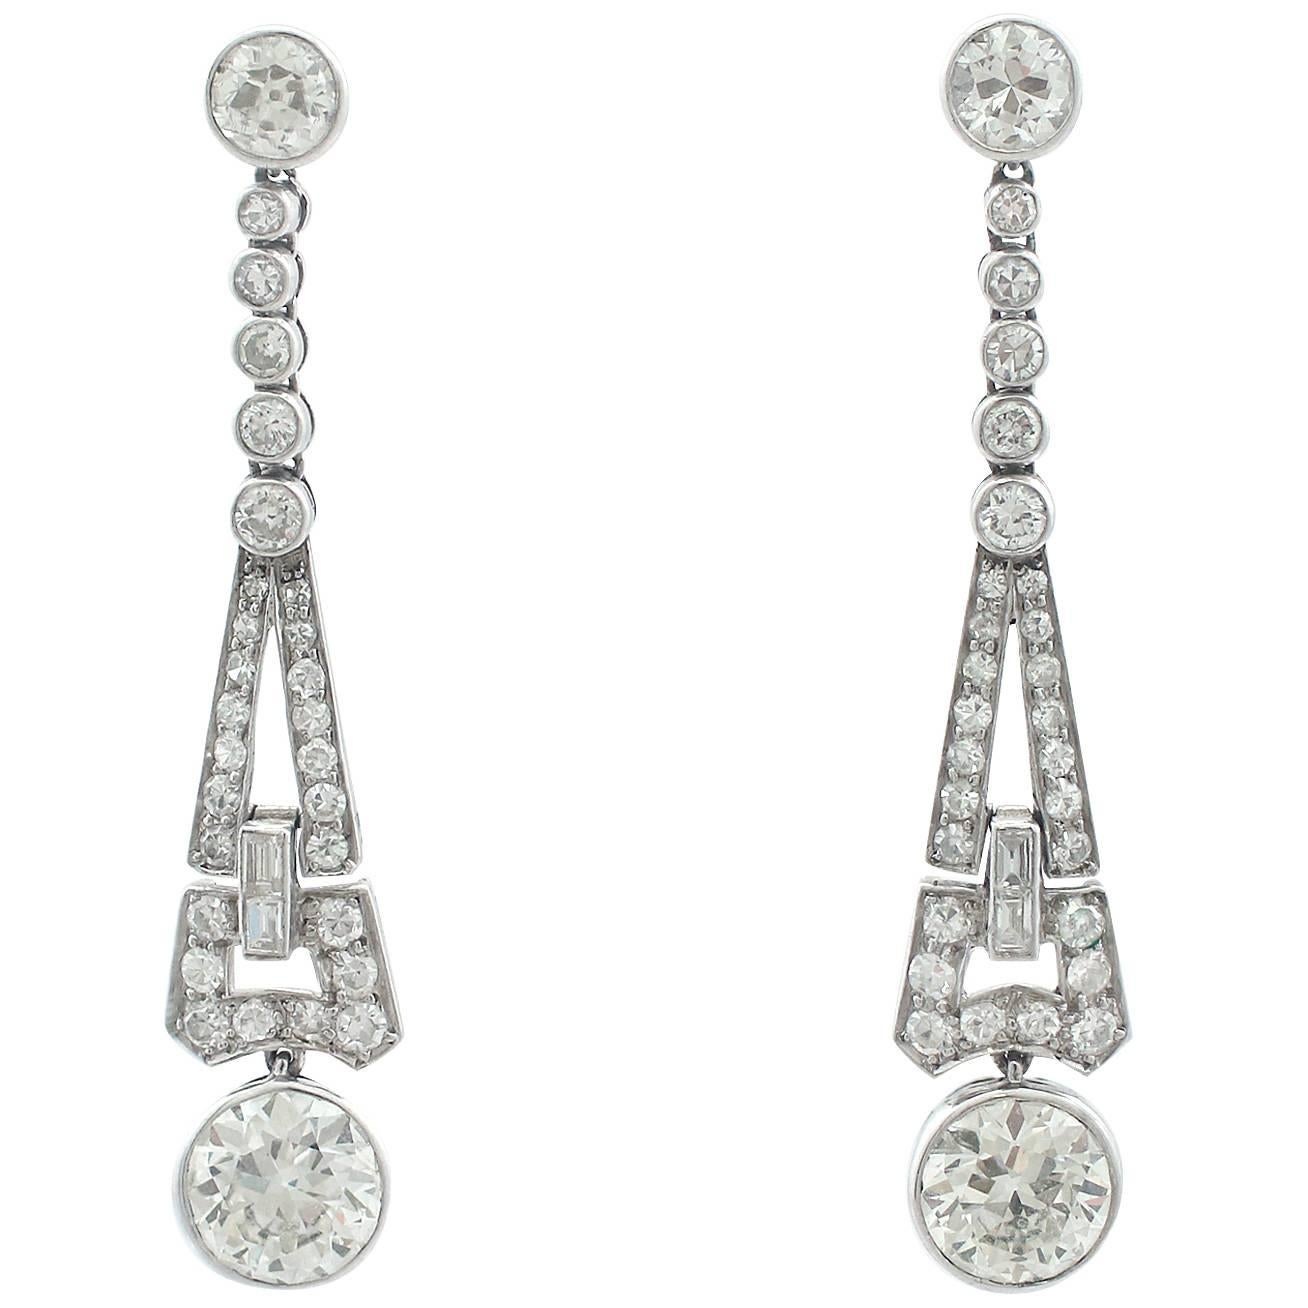 kjl products earring crystal com deco kennethjaylane art earrings clip